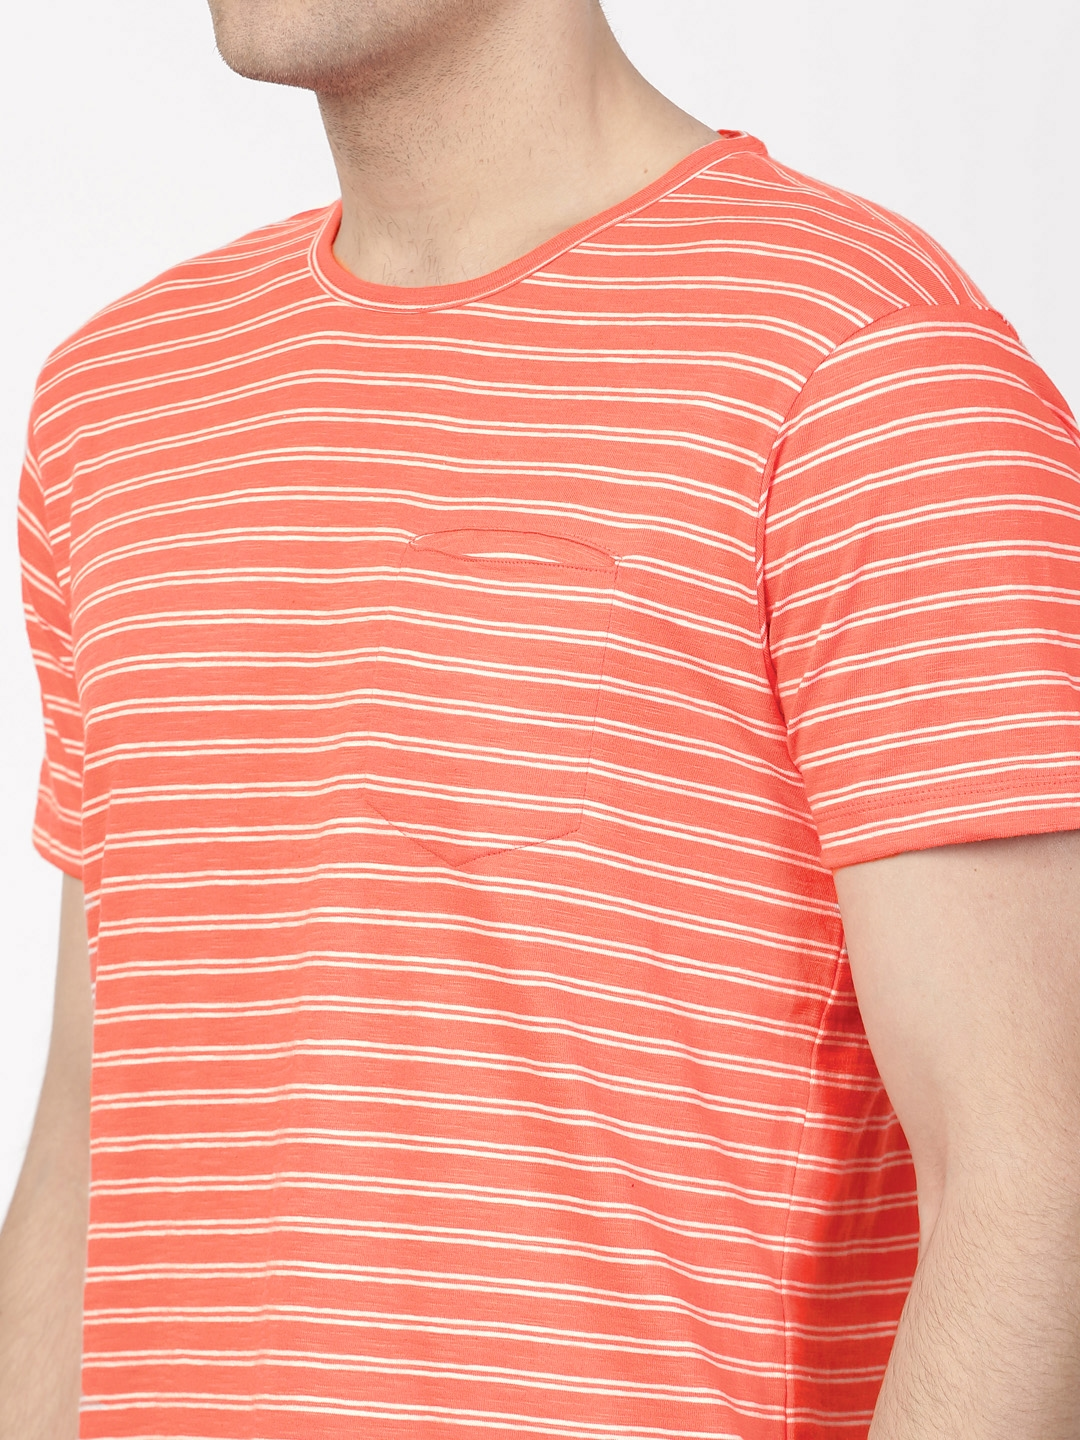 efc35690a7 Buy Ether Men Orange & White Lightweight Striped Round Neck T Shirt ...